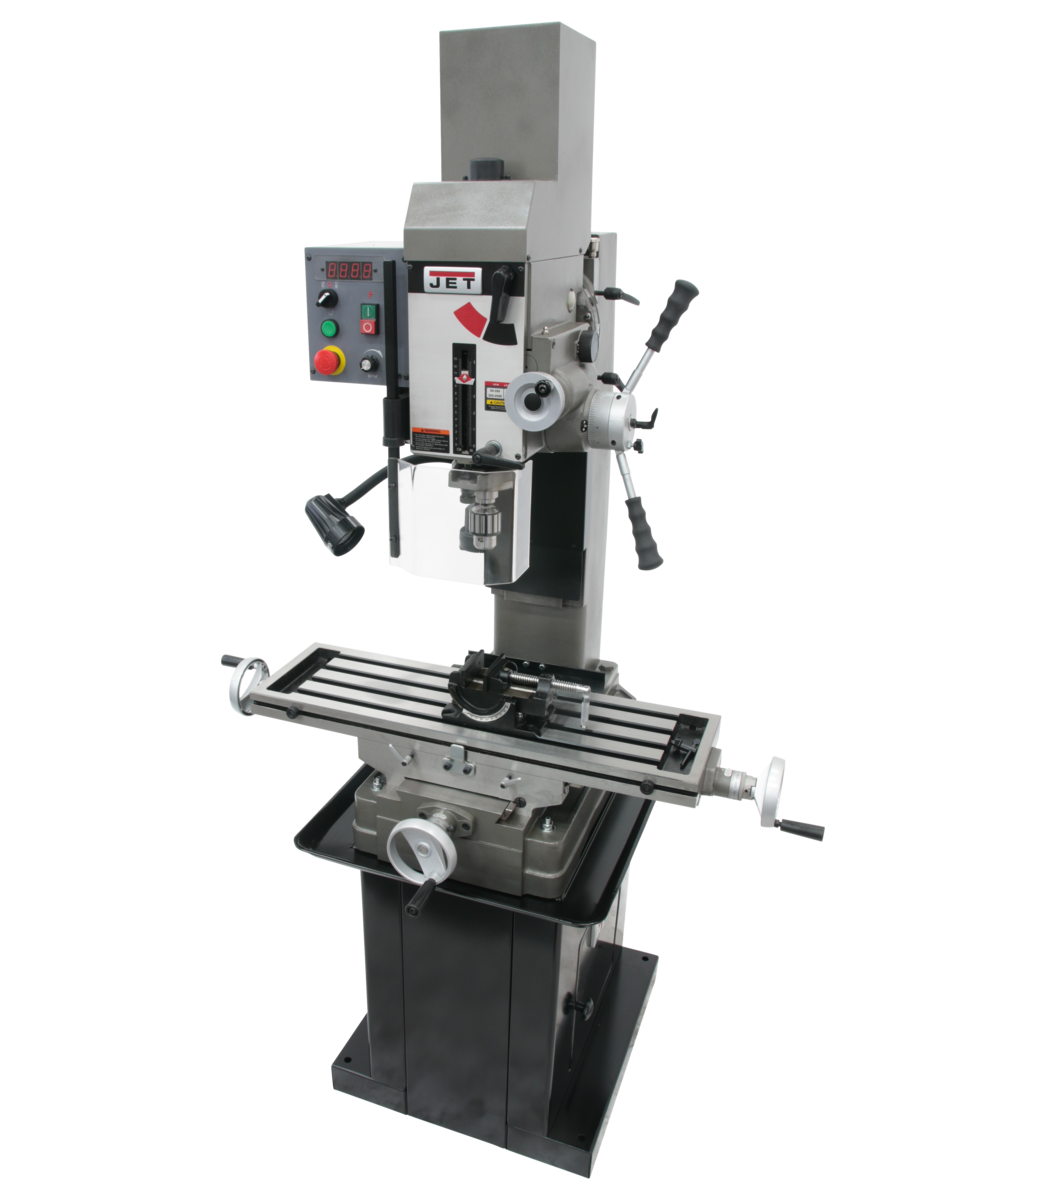 JMD-45VSPFT Variable Speed Geared Head Square Column Mill/Drill with Power Downfeed & Newall DP700 2-Axis DRO